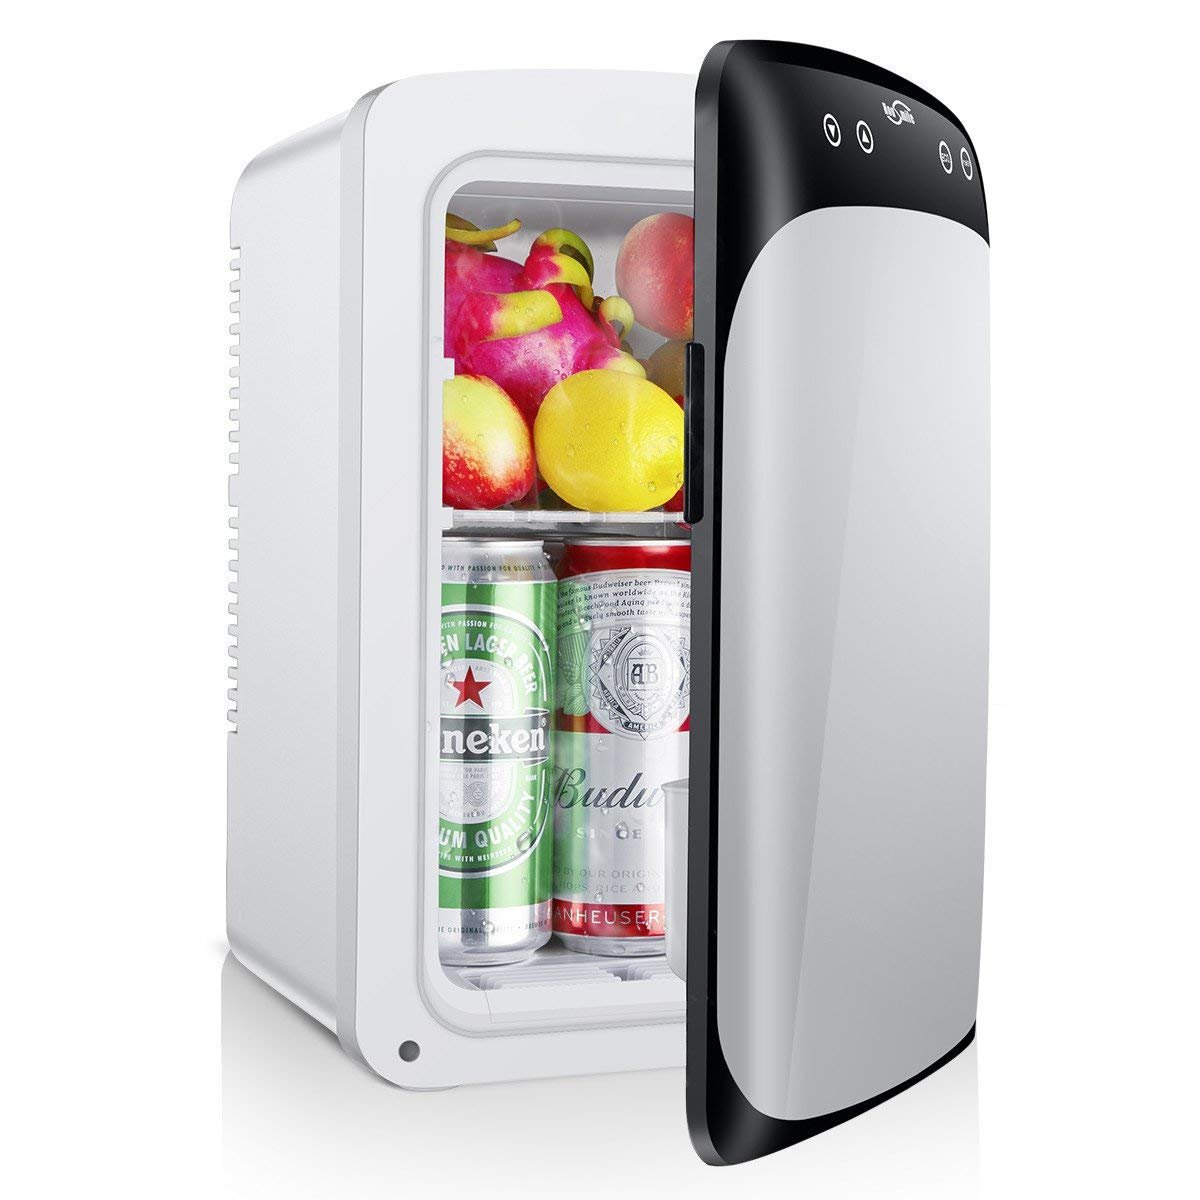 Housmile Thermo - Electric Cooler and Warmer Car Refrigerator Portable Mini Fridge AC & DC, Dual System for Refrigeration and Heating, ECO Power Saving Mode, 10 Liter